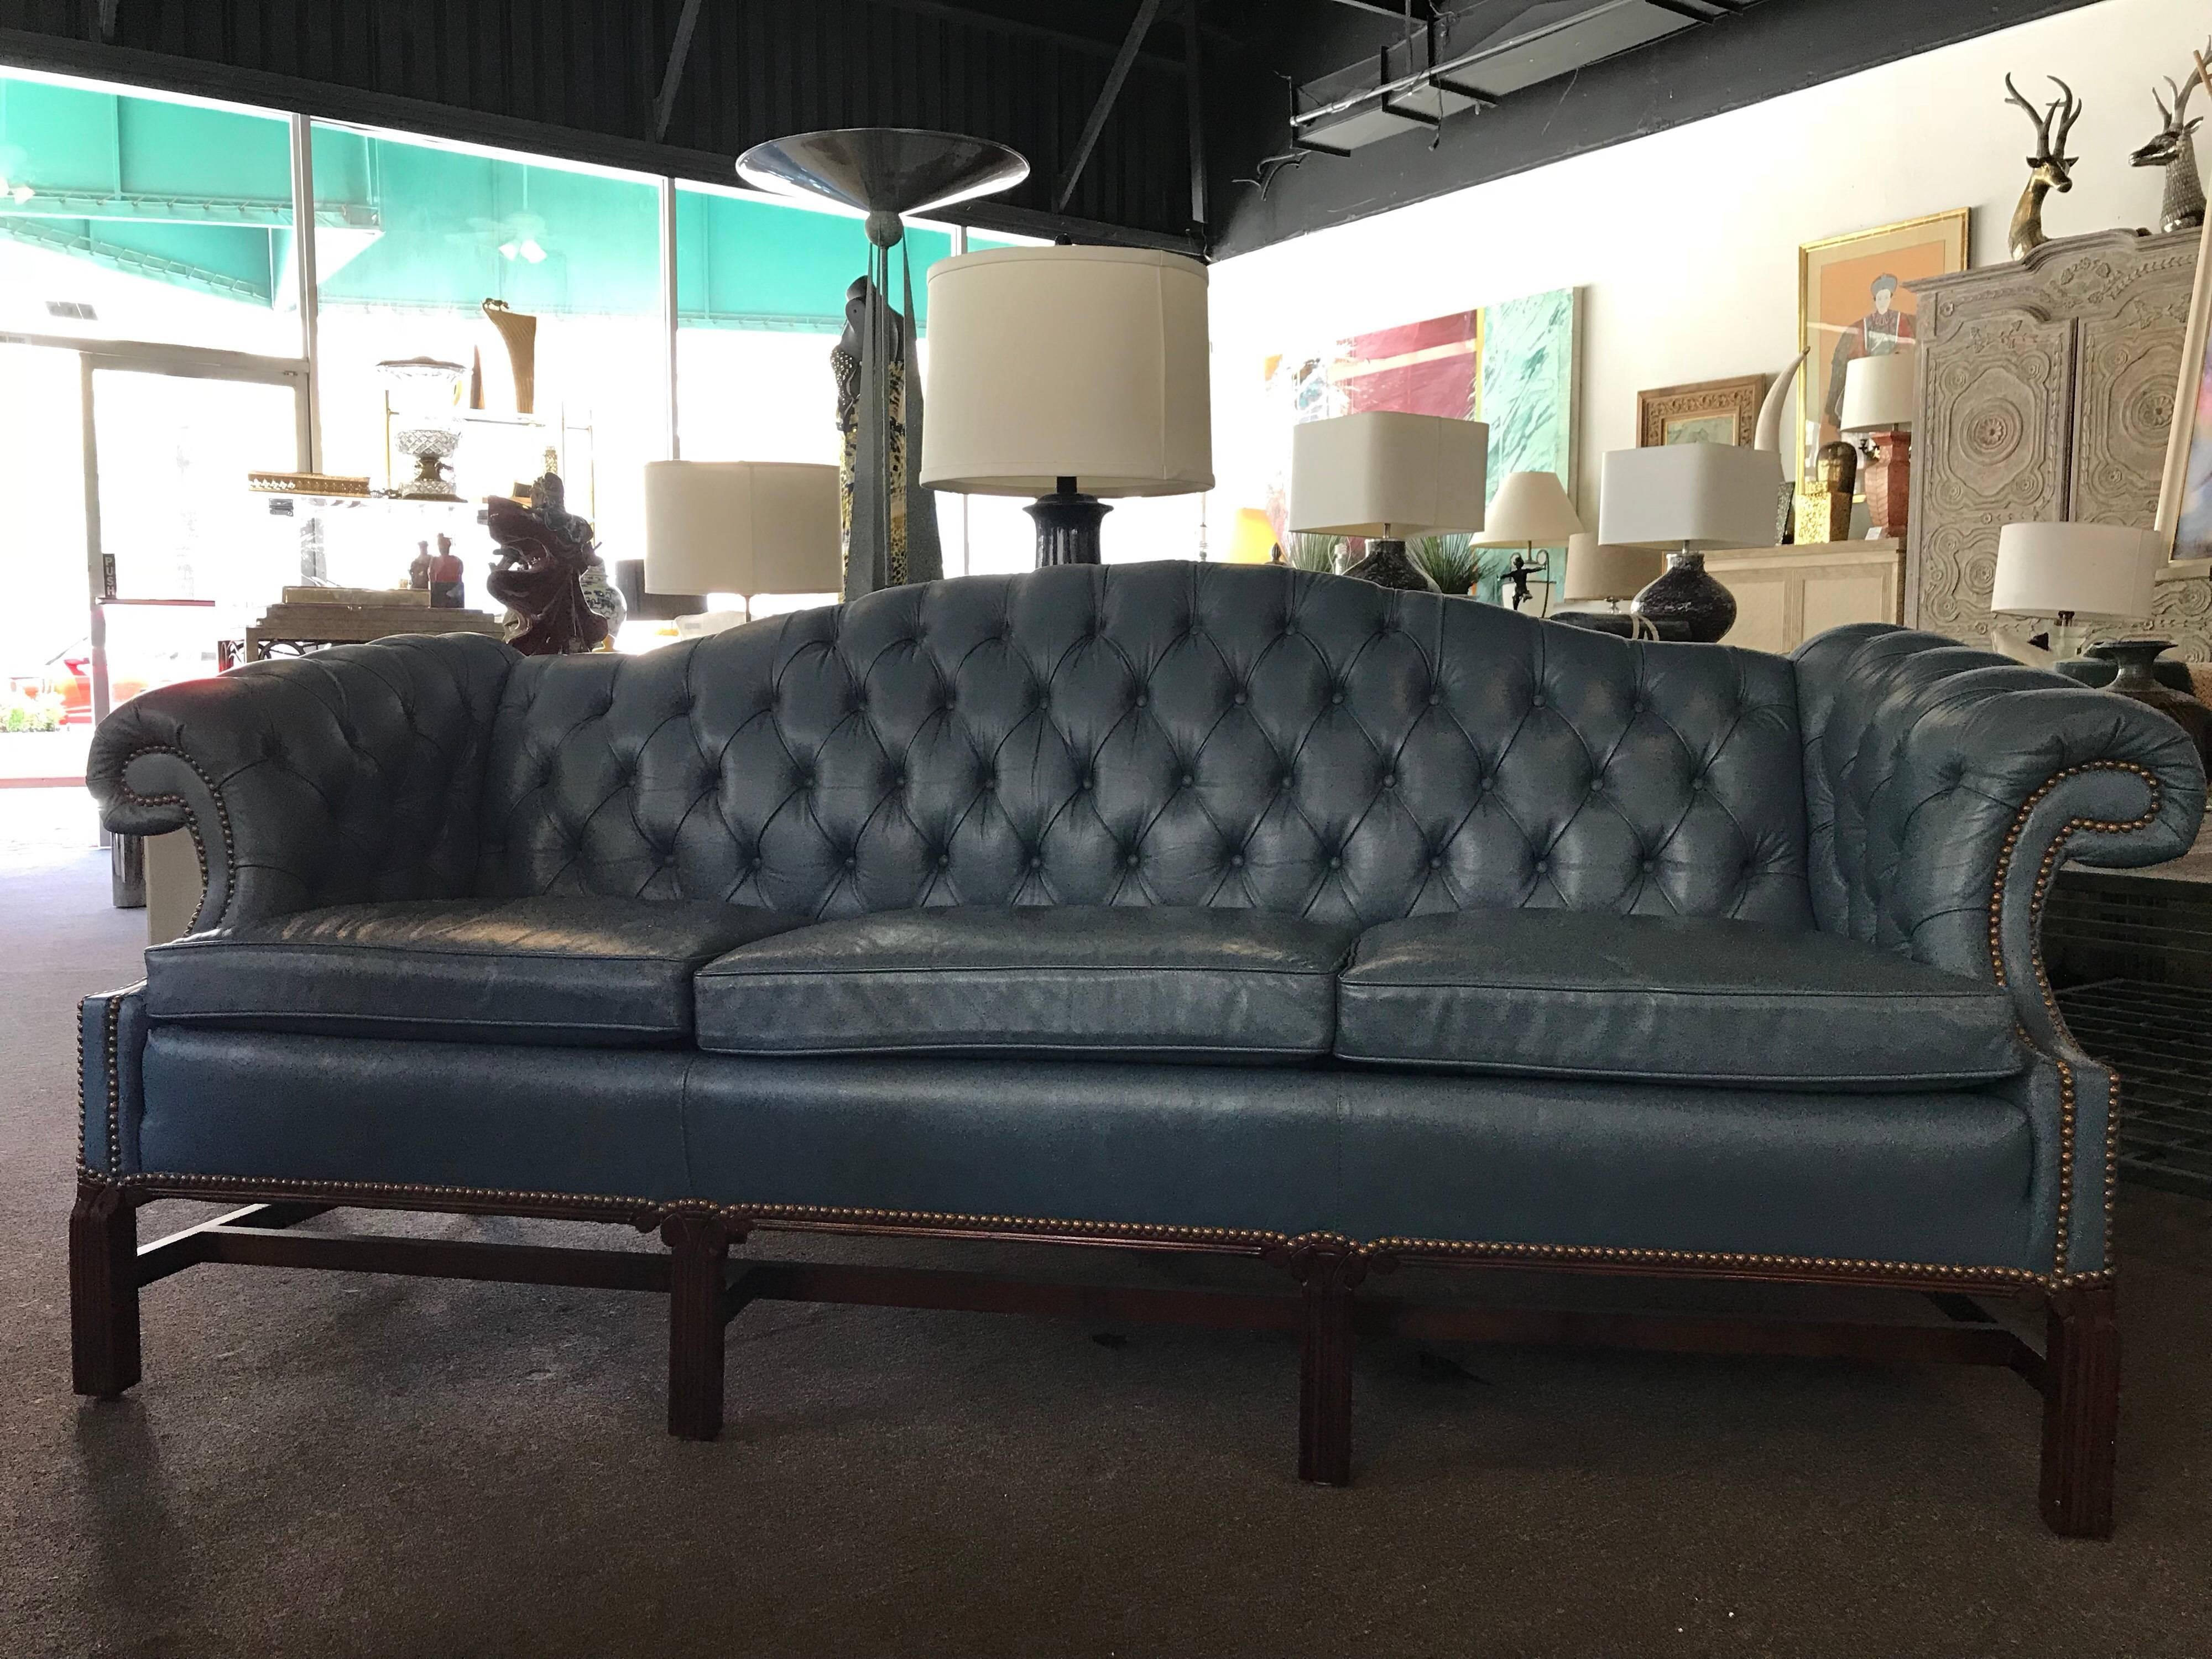 Etonnant A Gorgeous Leather Sofa Made In The USA By Leathercraft In North Carolina.  This Sofa